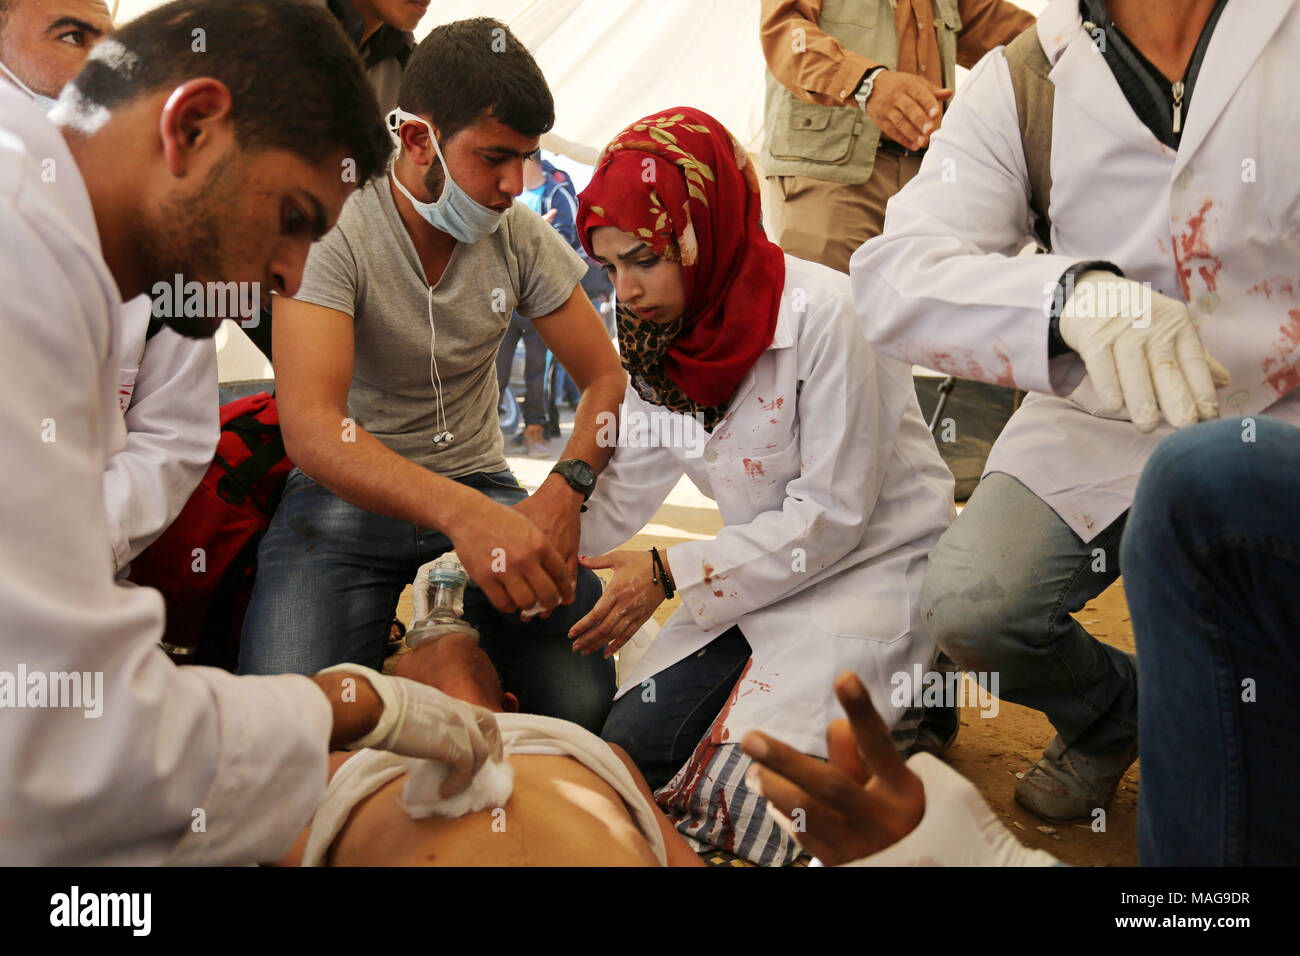 Khan Younis, Gaza Strip, Palestinian Territory. 1st Apr, 2018. Palestinian medical Razan al-Najjar helps an injured Palestinian man at an emergency medical tent during clashes with Israeli security forces in a protest, at the Israel-Gaza border, demanding the right to return to their homeland, in Khan Younis in the southern Gaza strip on April 1, 2018 Credit: Ashraf Amra/APA Images/ZUMA Wire/Alamy Live News - Stock Image